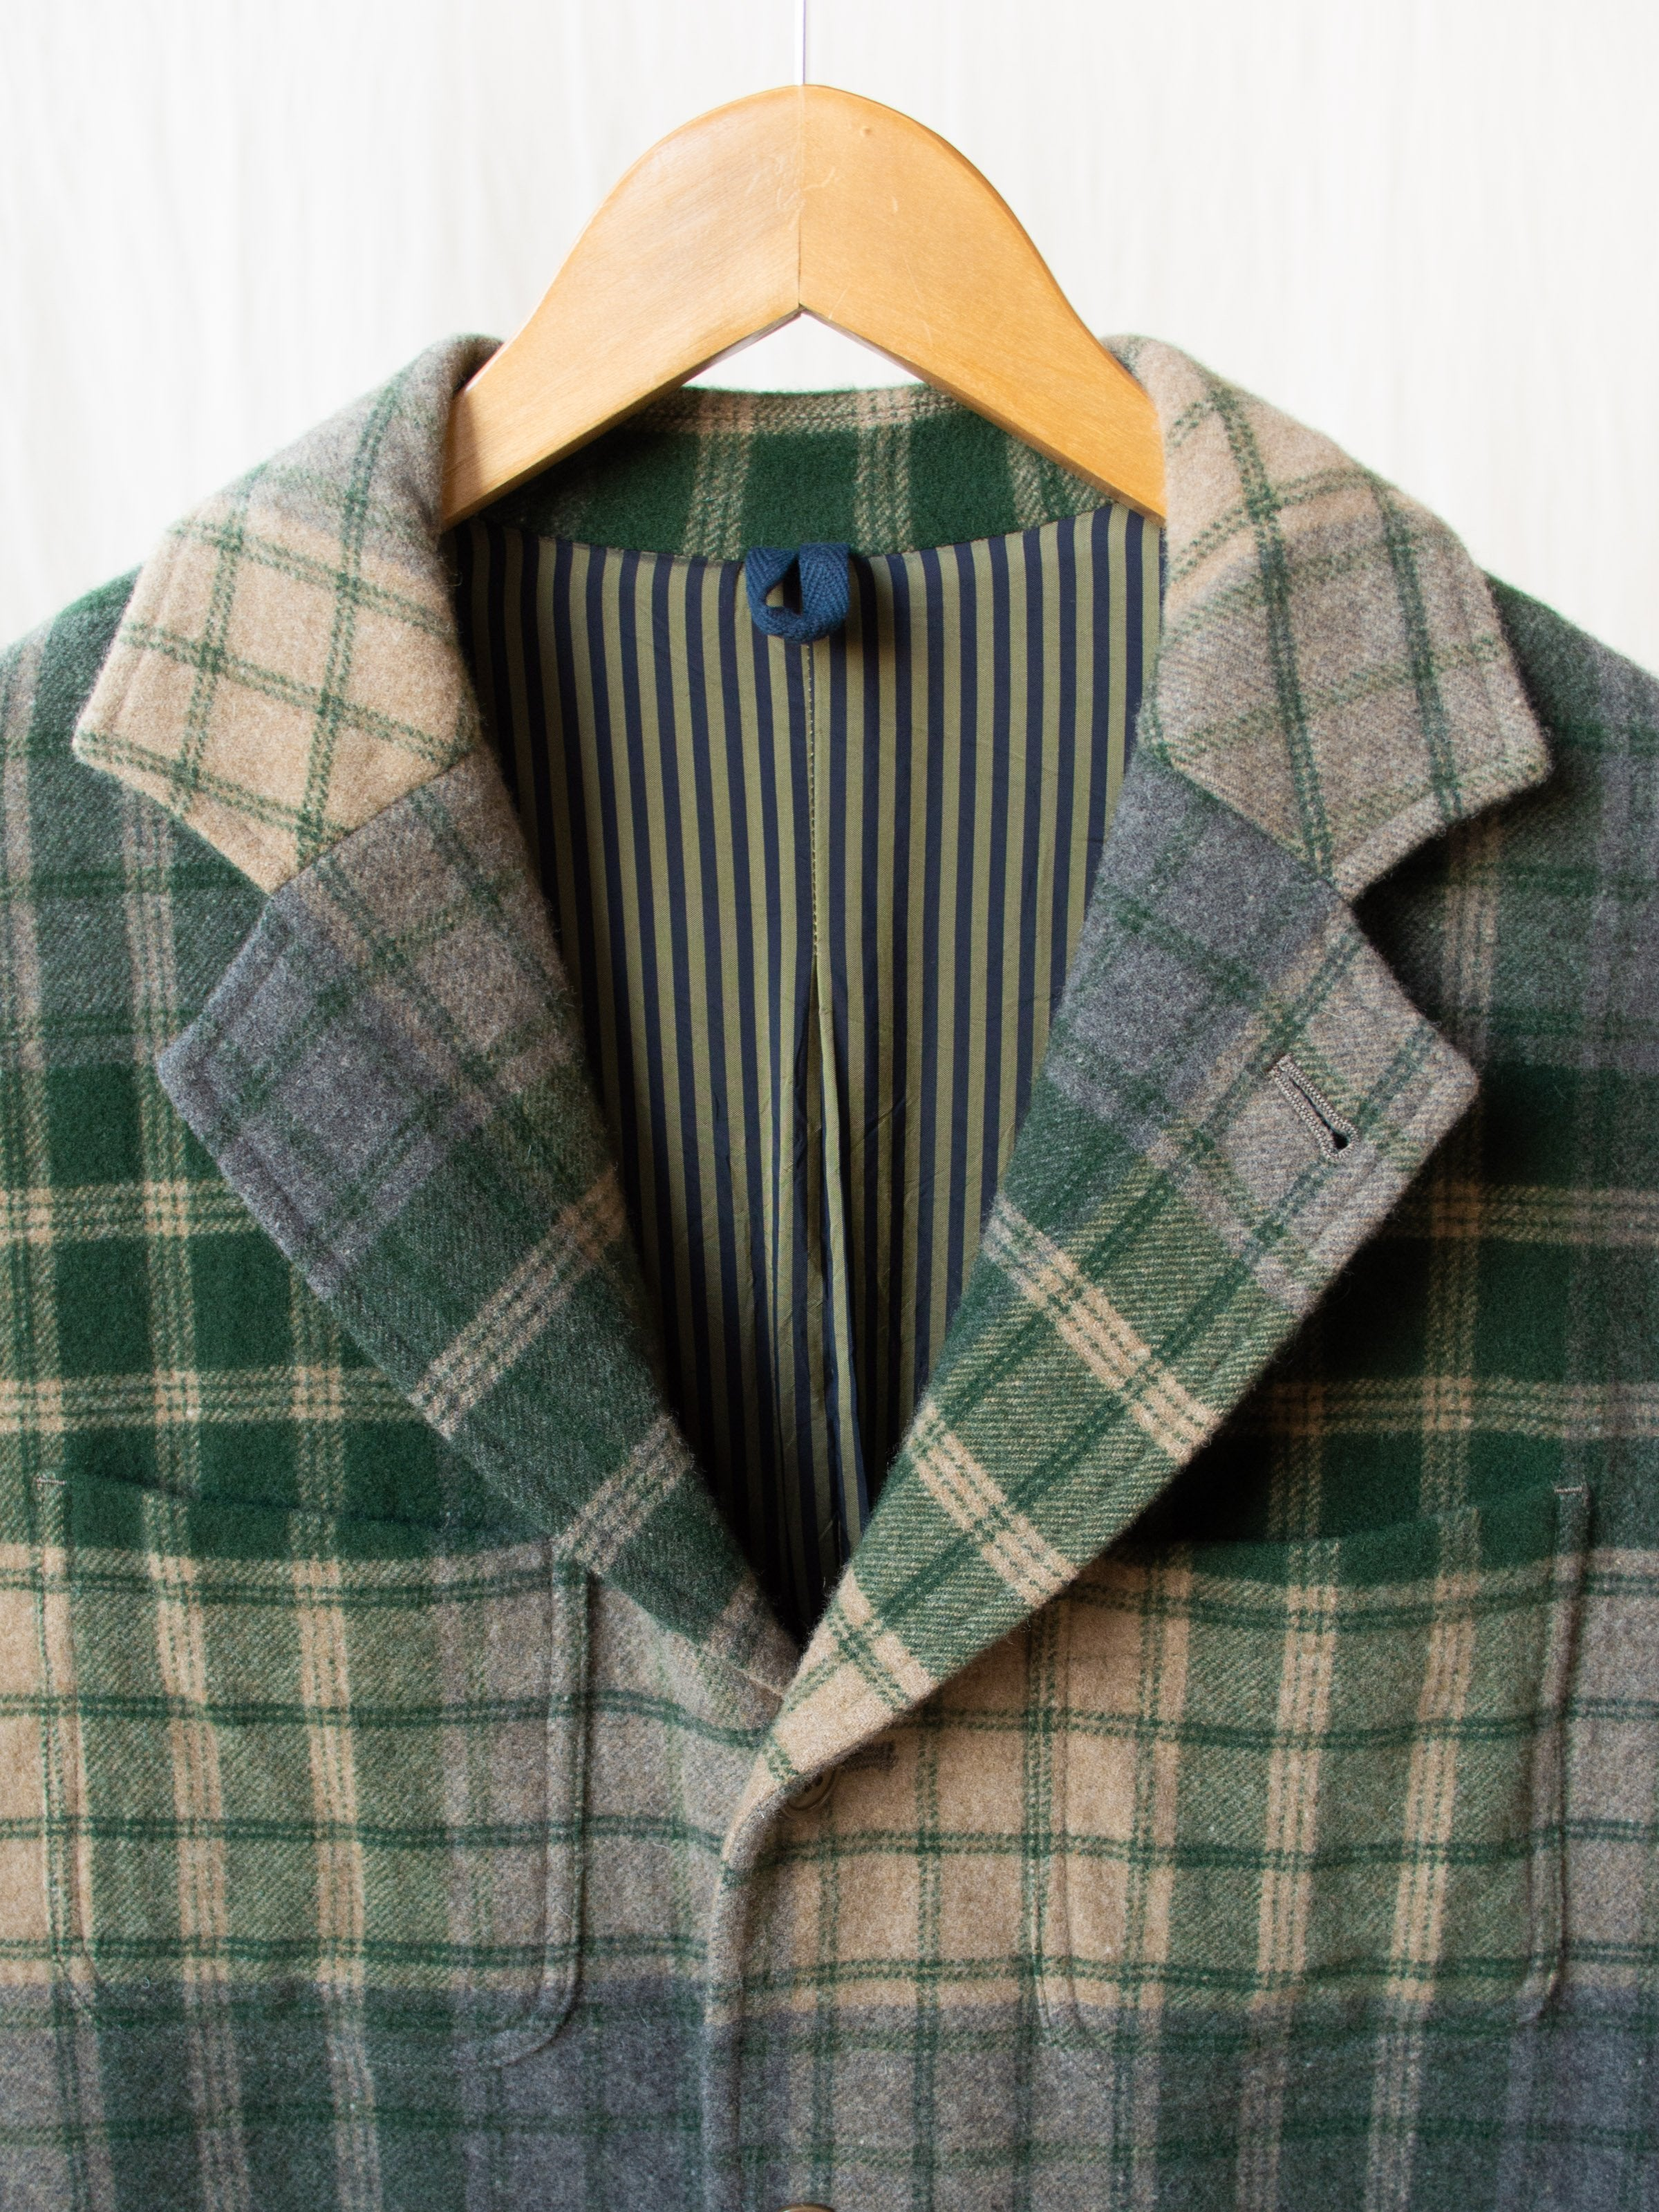 4+1 Patch Pocket Jacket - Green/Gray Beige Wool Plaid